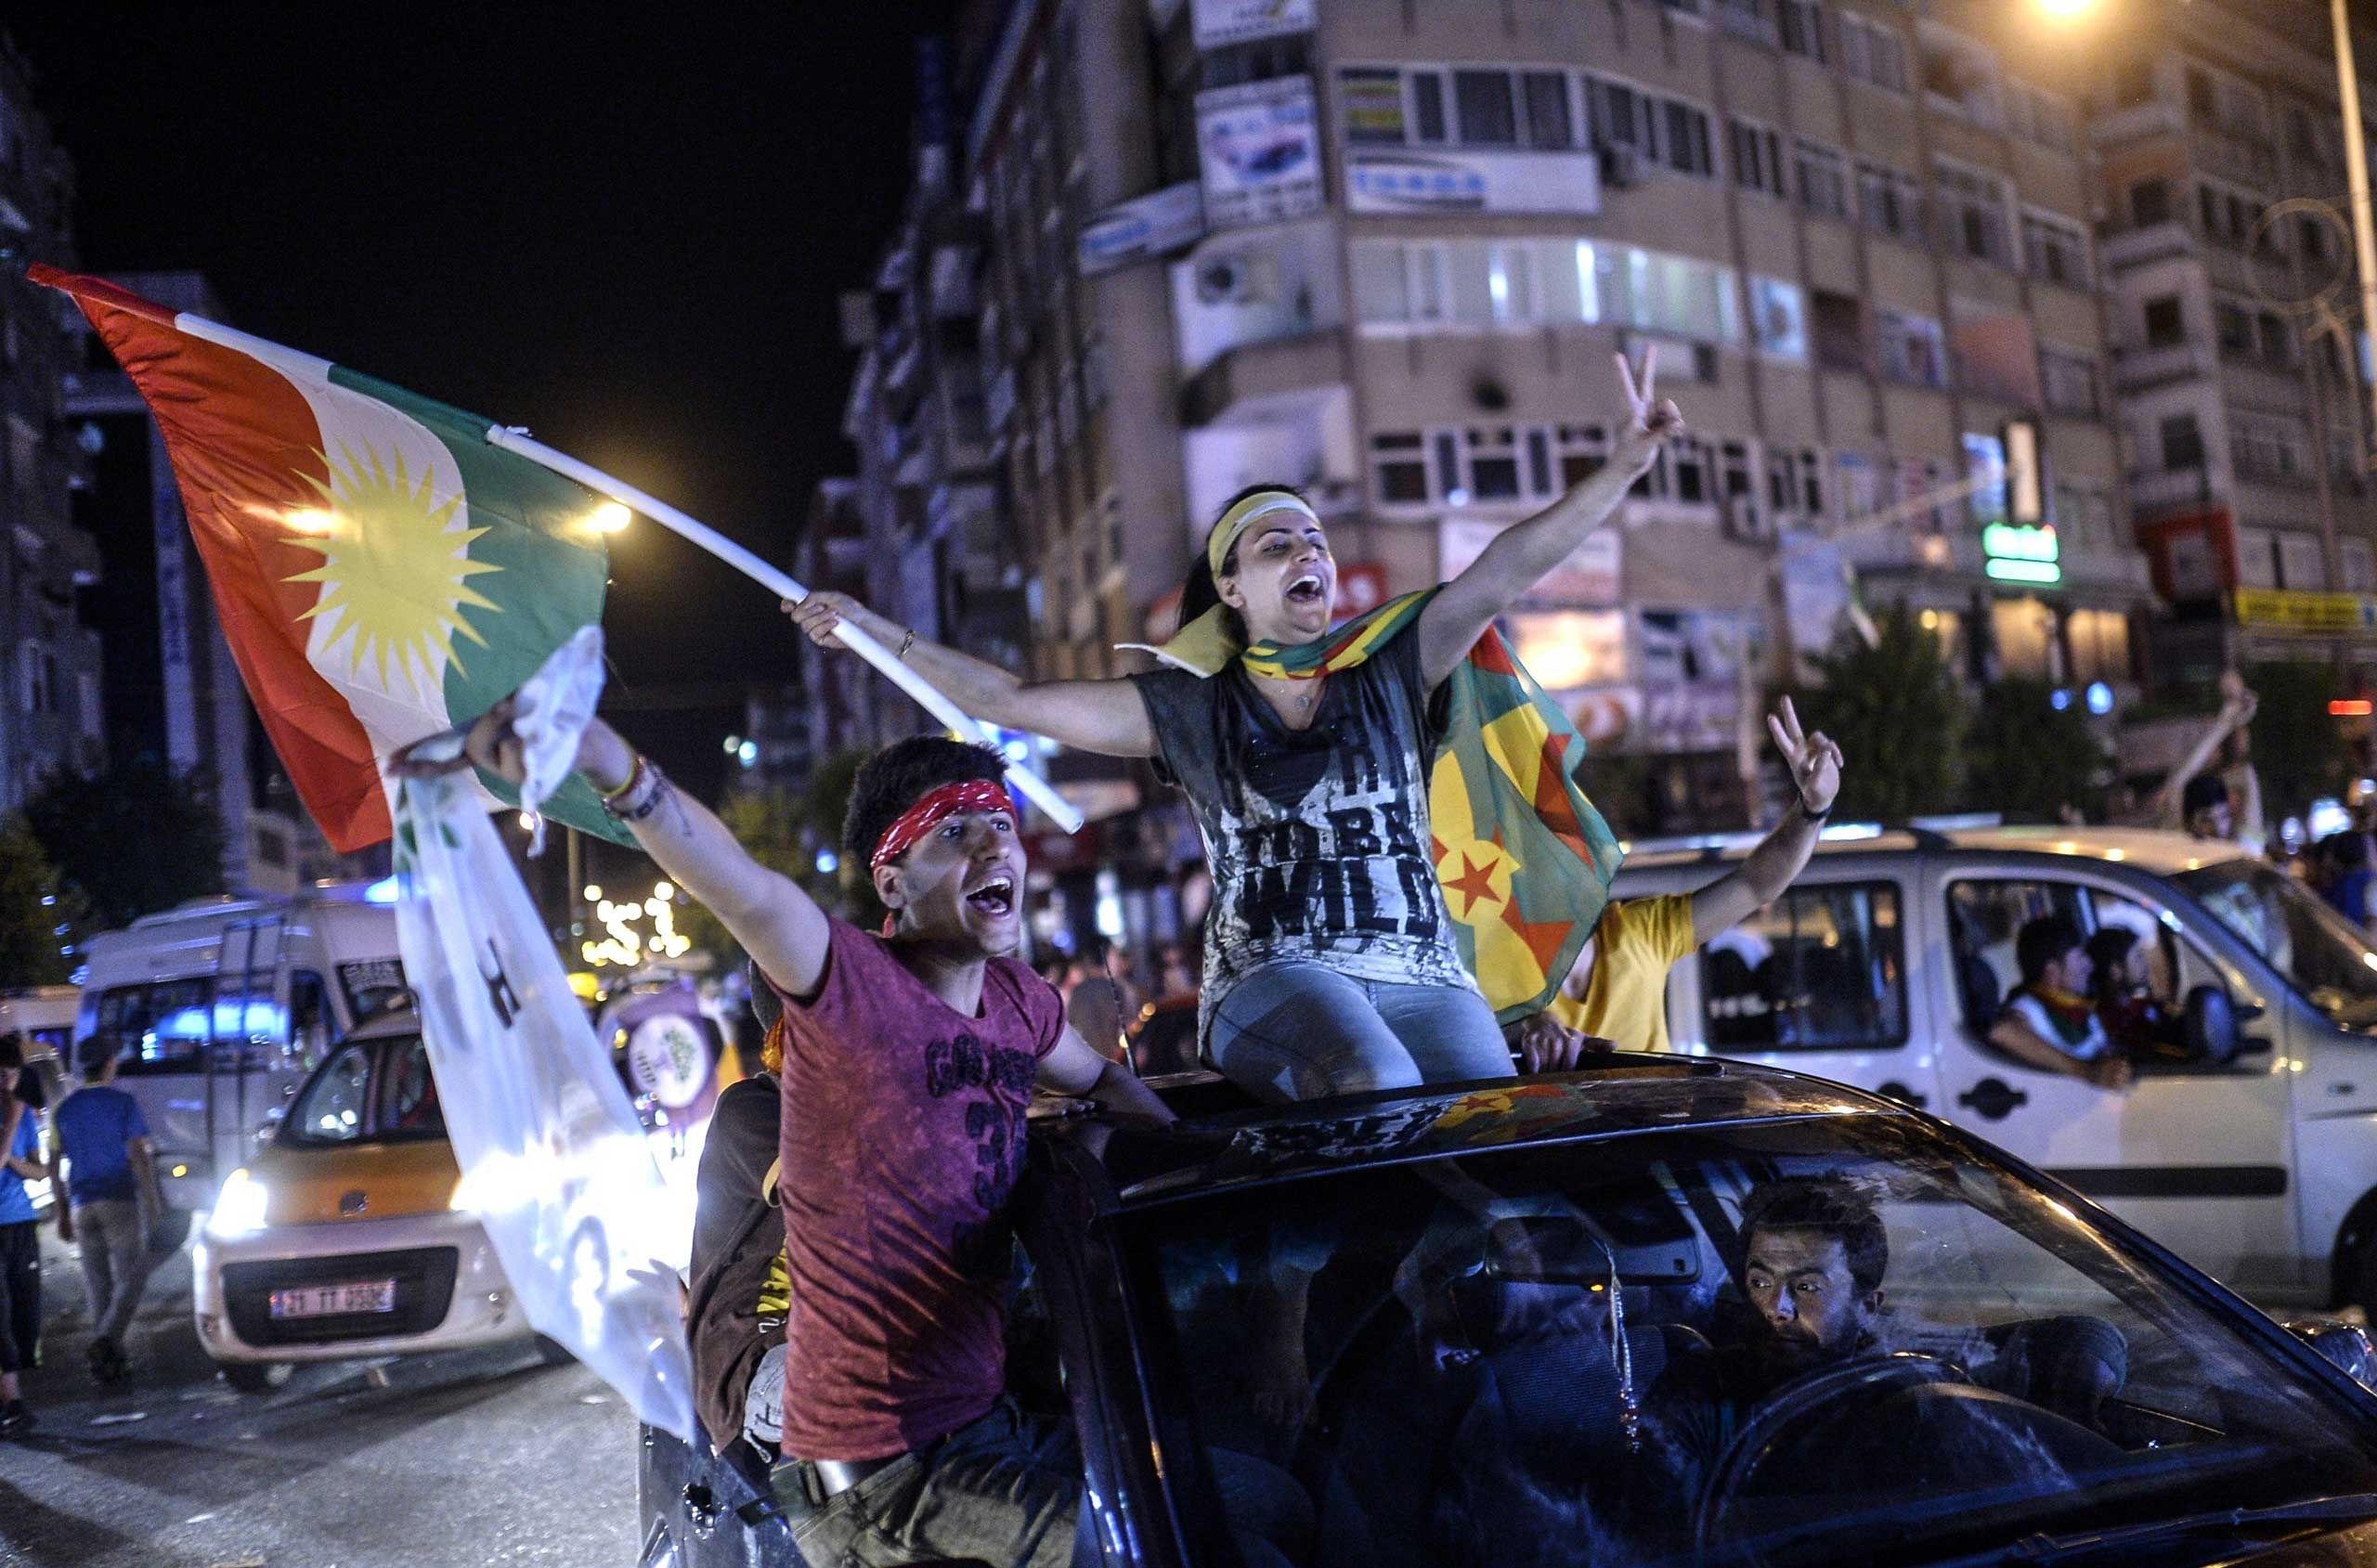 Young supporters of pro-Kurdish Peoples' Democratic Party (HDP) hold Kurdish flags as they celebrate the results of the legislative election, in Diyarbakir in Turkey on June 7, 2015.